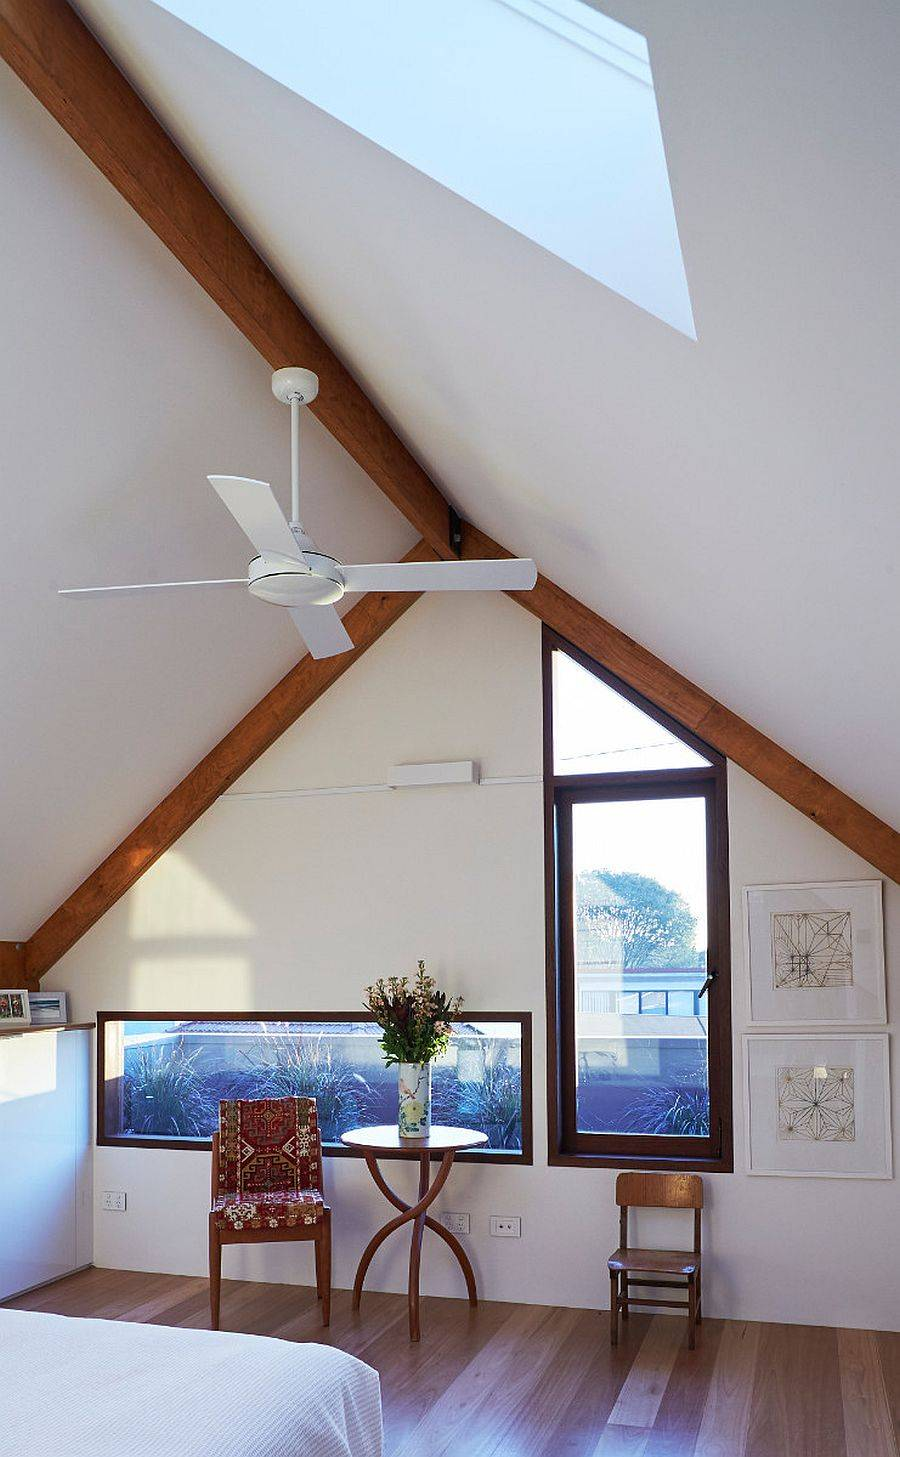 SKylight-brings-a-flood-of-natural-light-into-the-upper-level-bedroom-14943